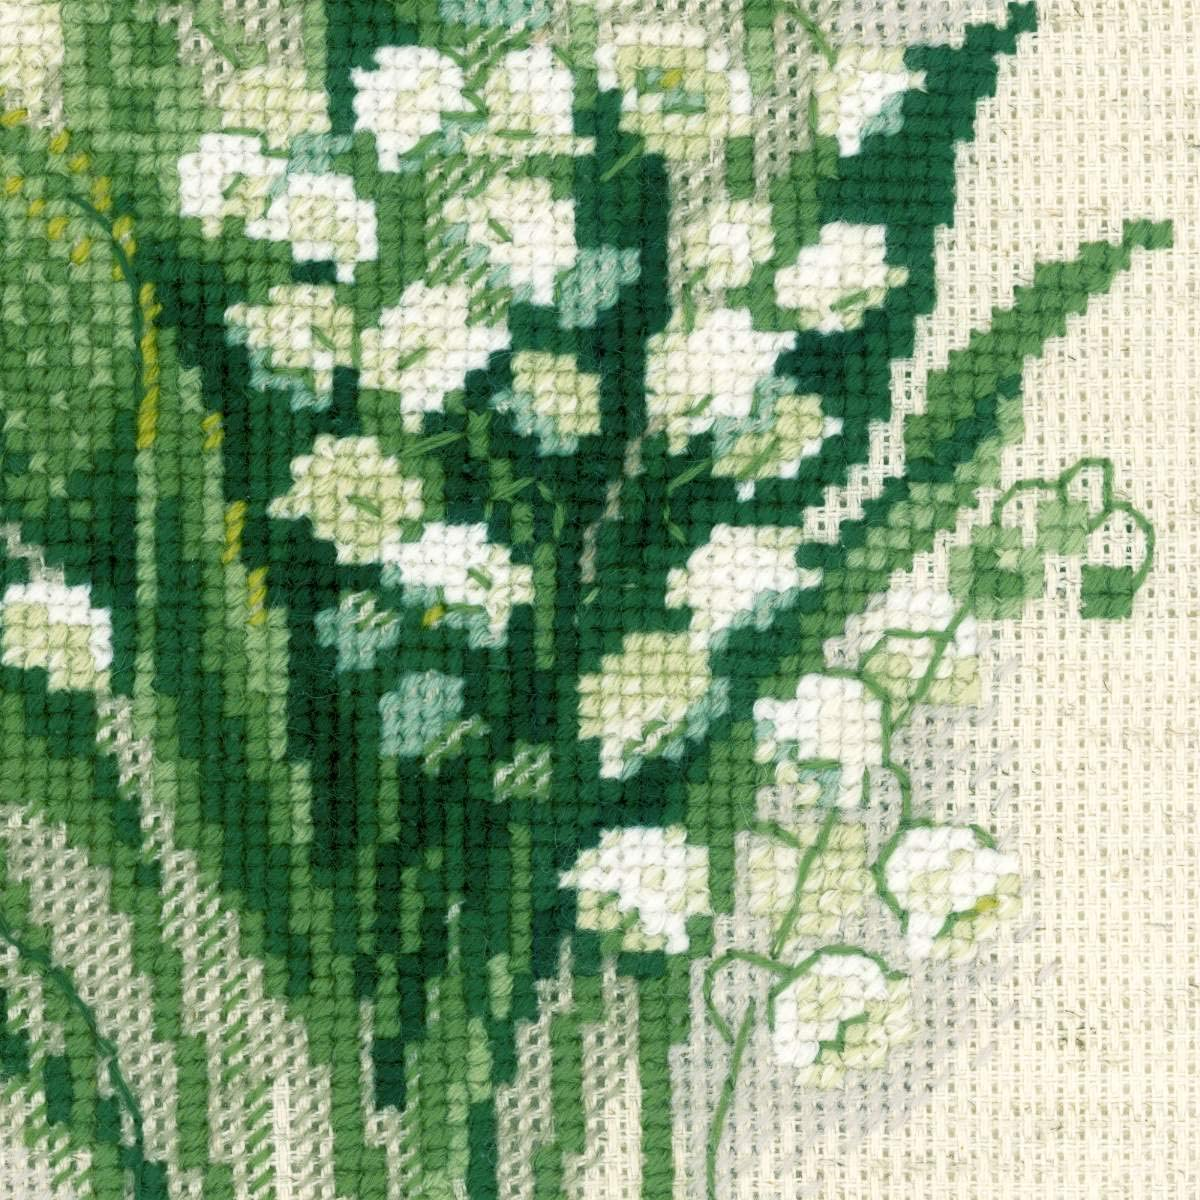 8 x 8 RIOLIS 14 Count Forget Me Nots Counted Cross Stitch Kit